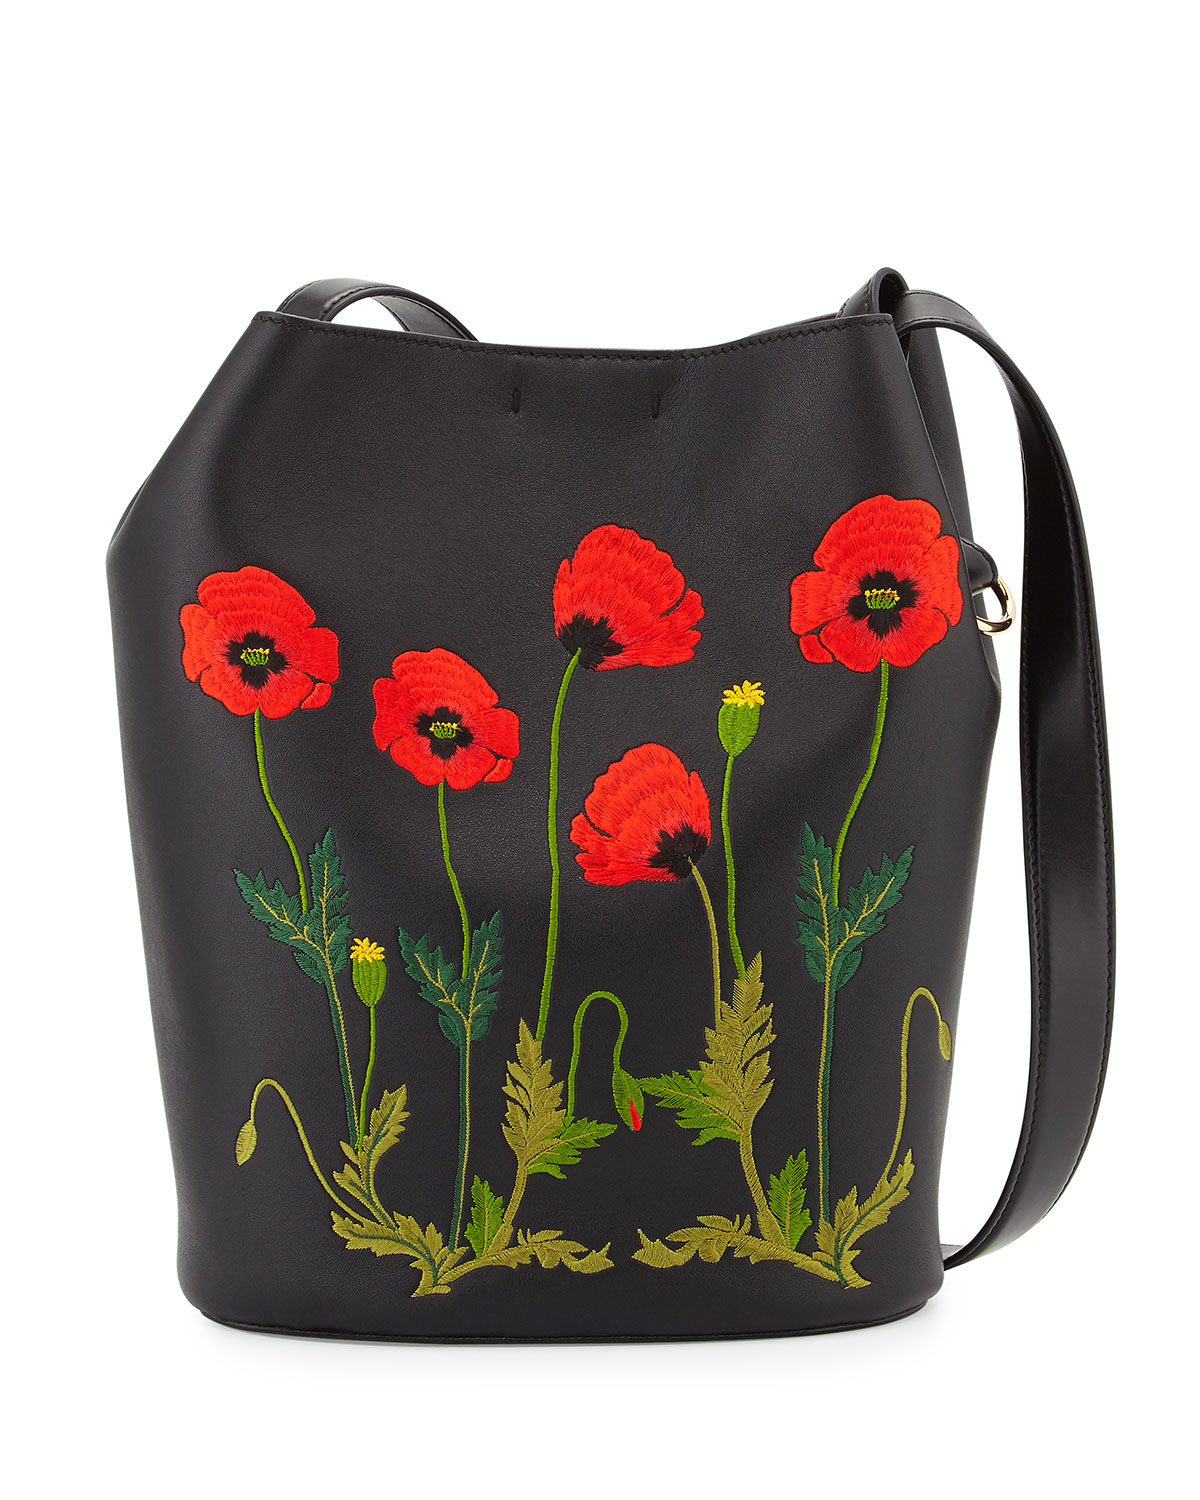 Stella Mccartney Embroidered FauxLeather Bucket Bag In